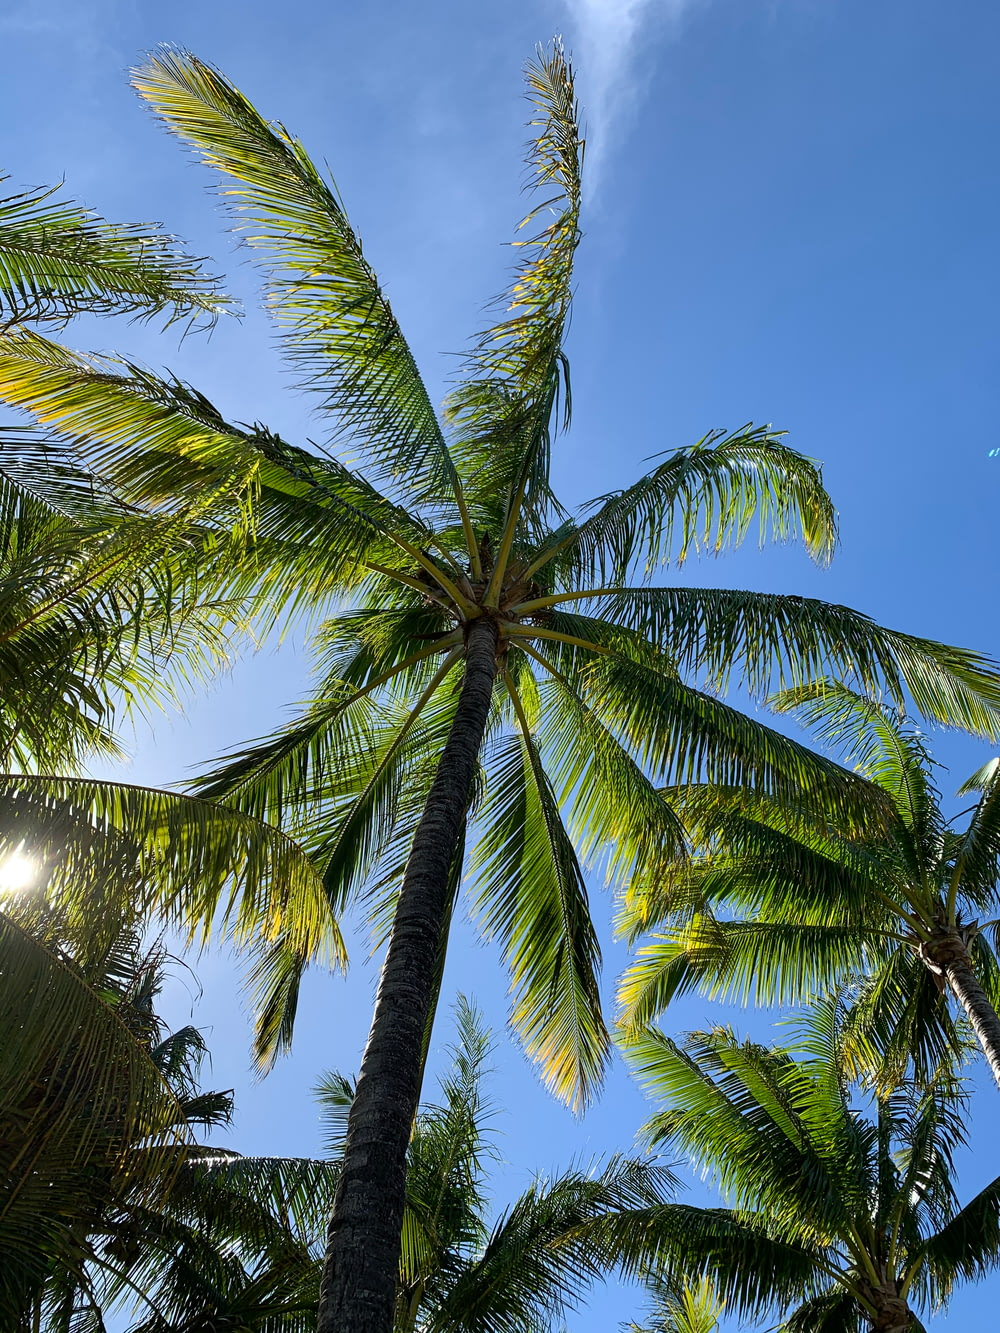 green coconut palm tree under blue sky during daytime